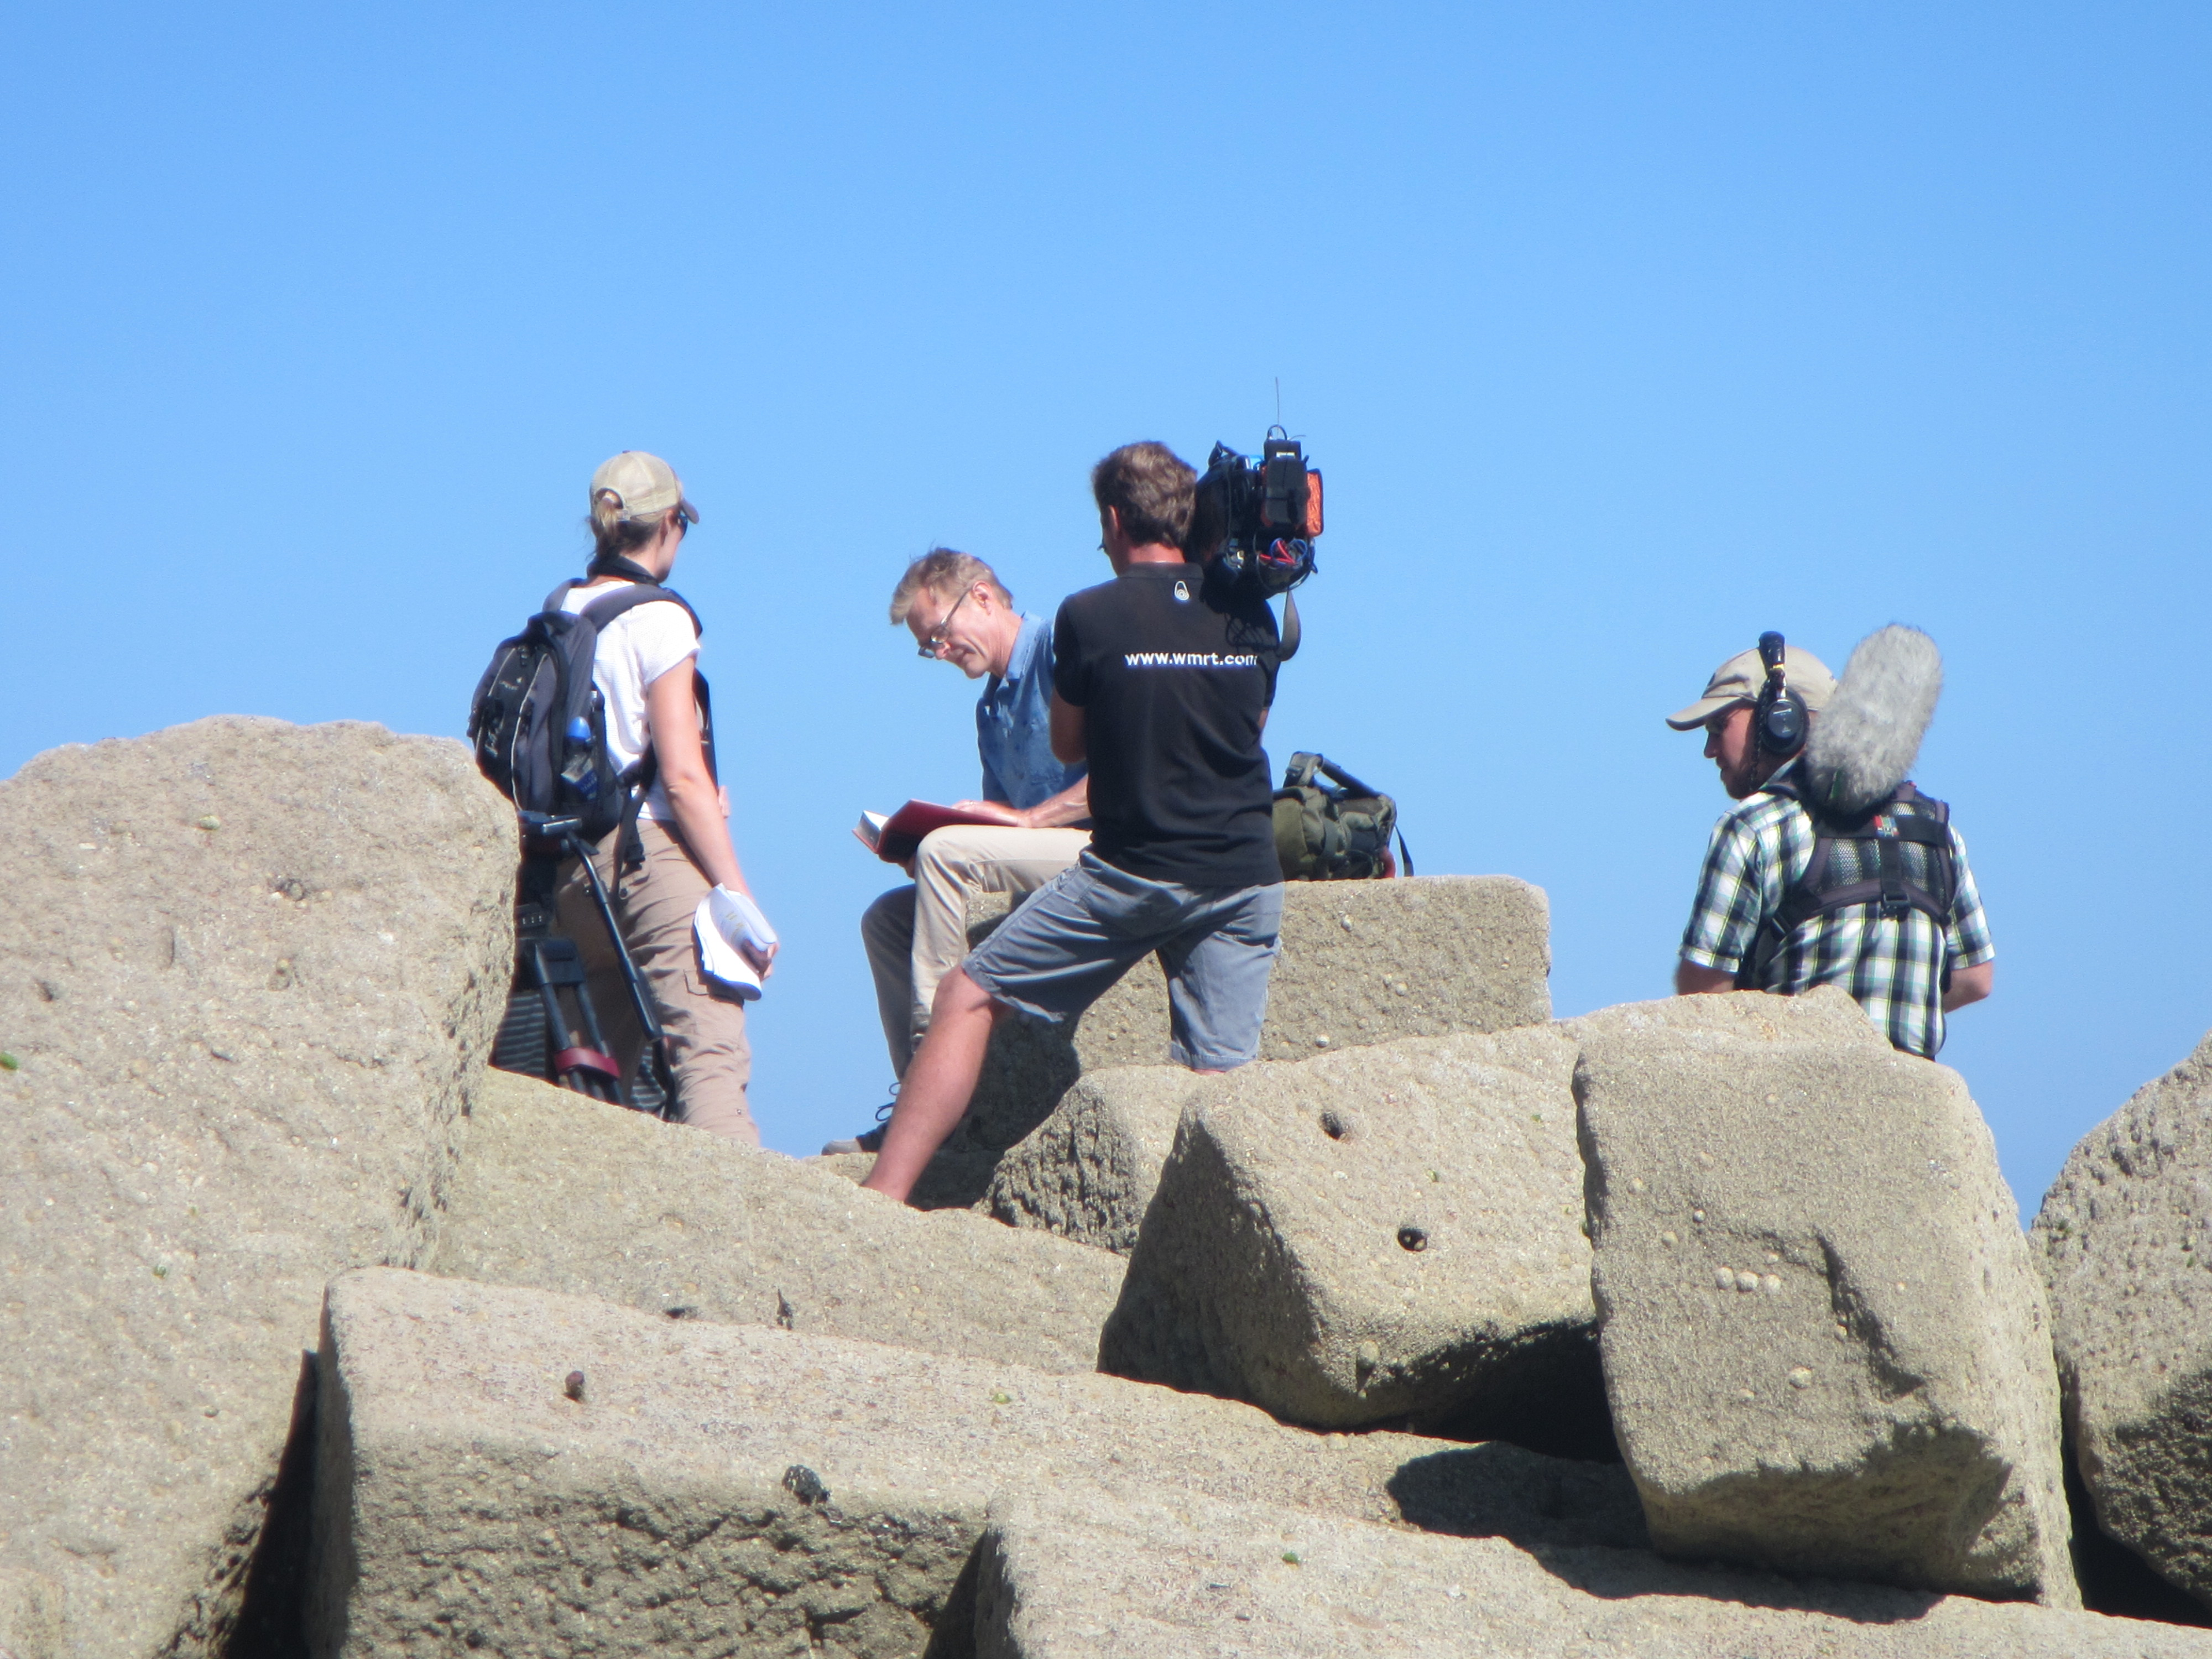 BBC2's Coast were filming at Trevaunance Cove, St Agnes today!